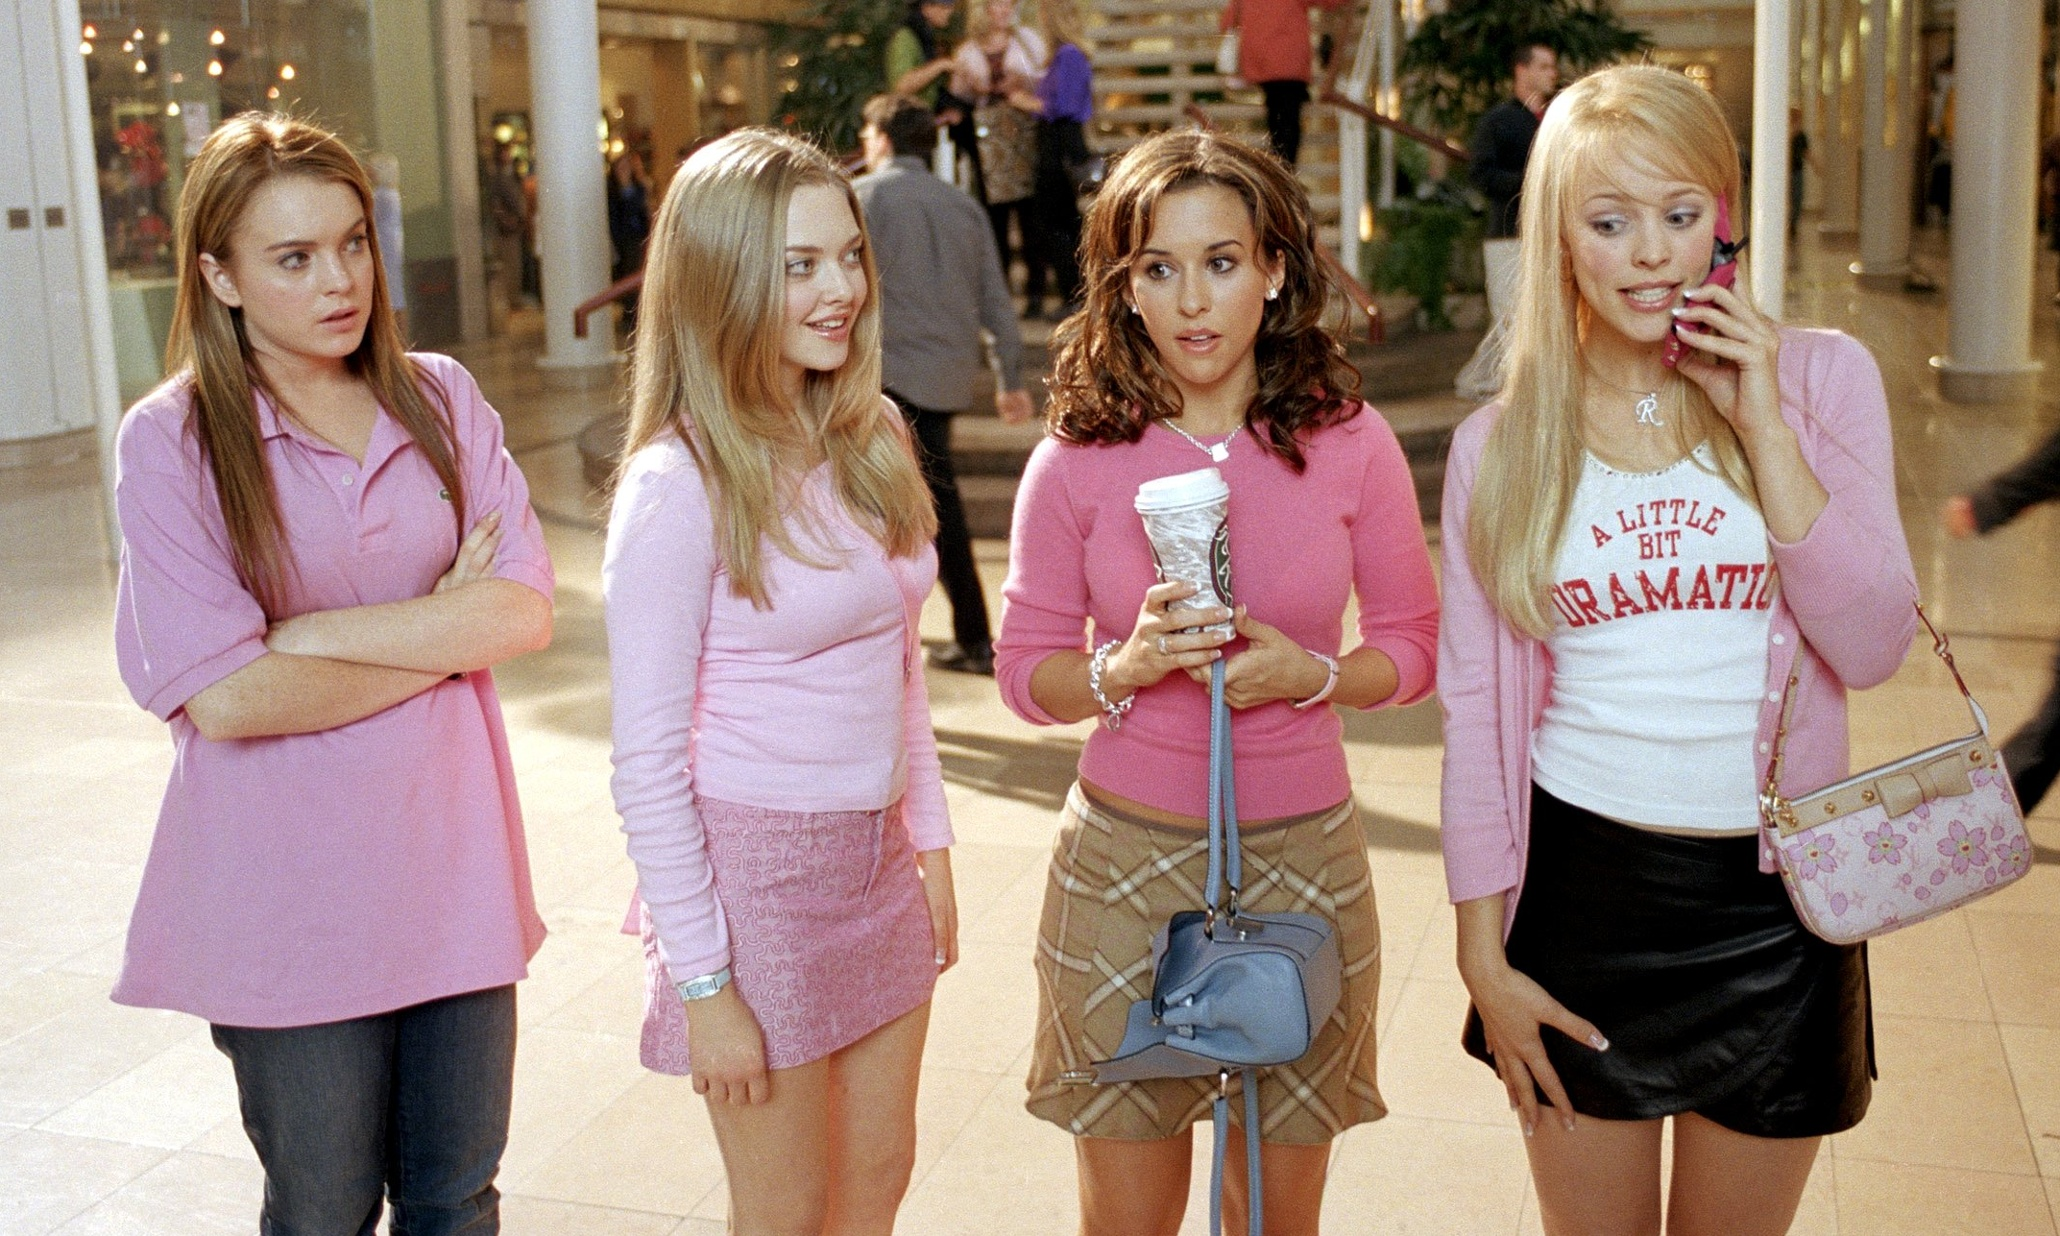 The Plastics from Mean Girls would obviously be in netball teams with pink kit.